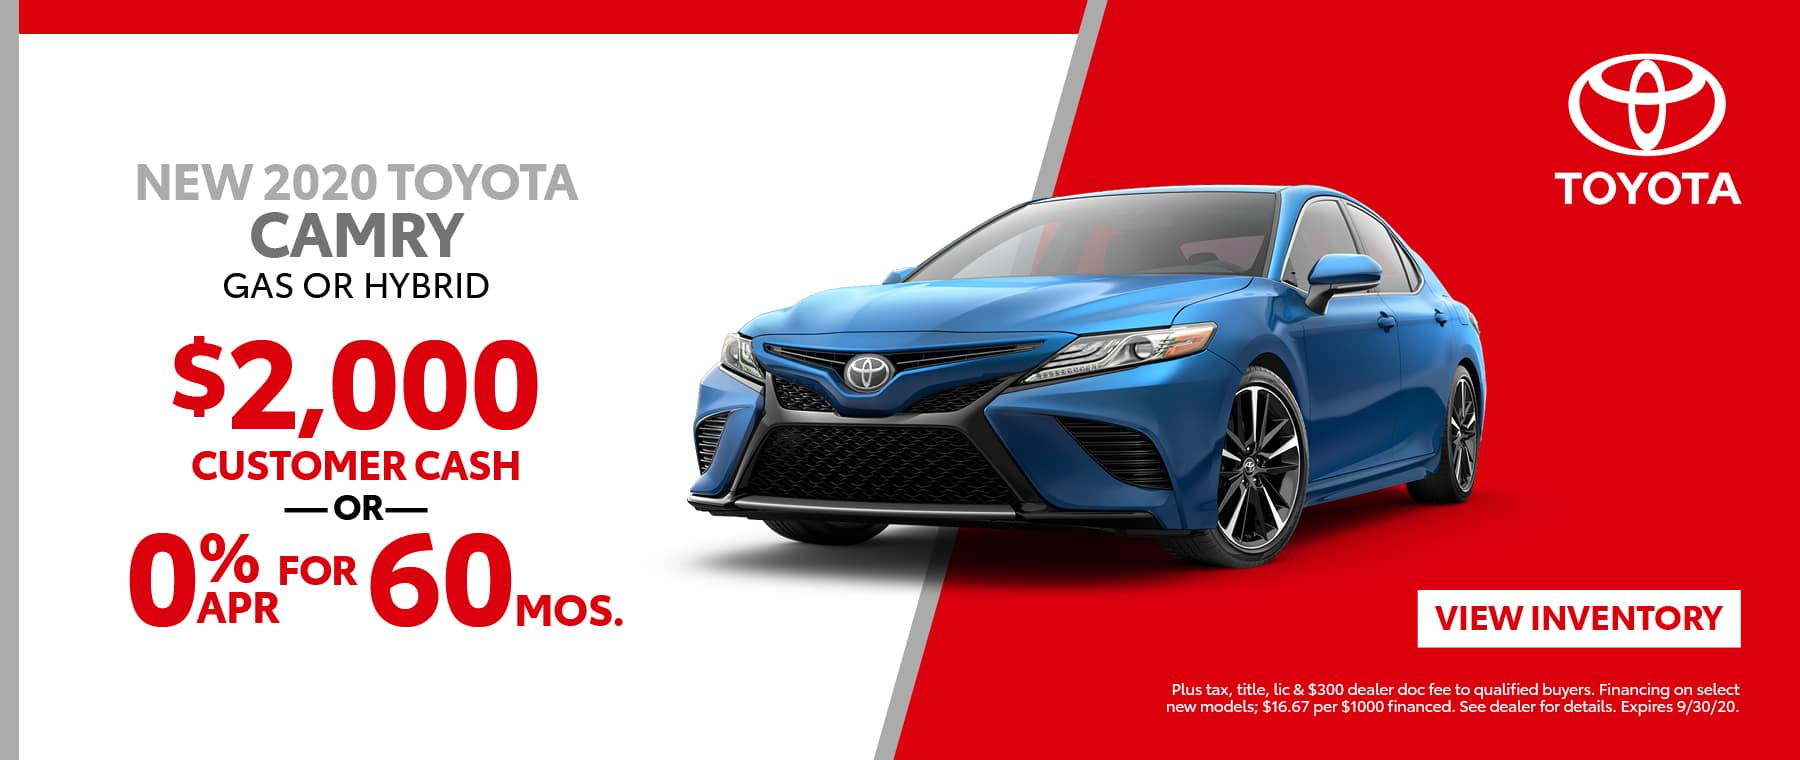 PAUL-TOY-CAMRY-$2,000-SEPT-1800×760